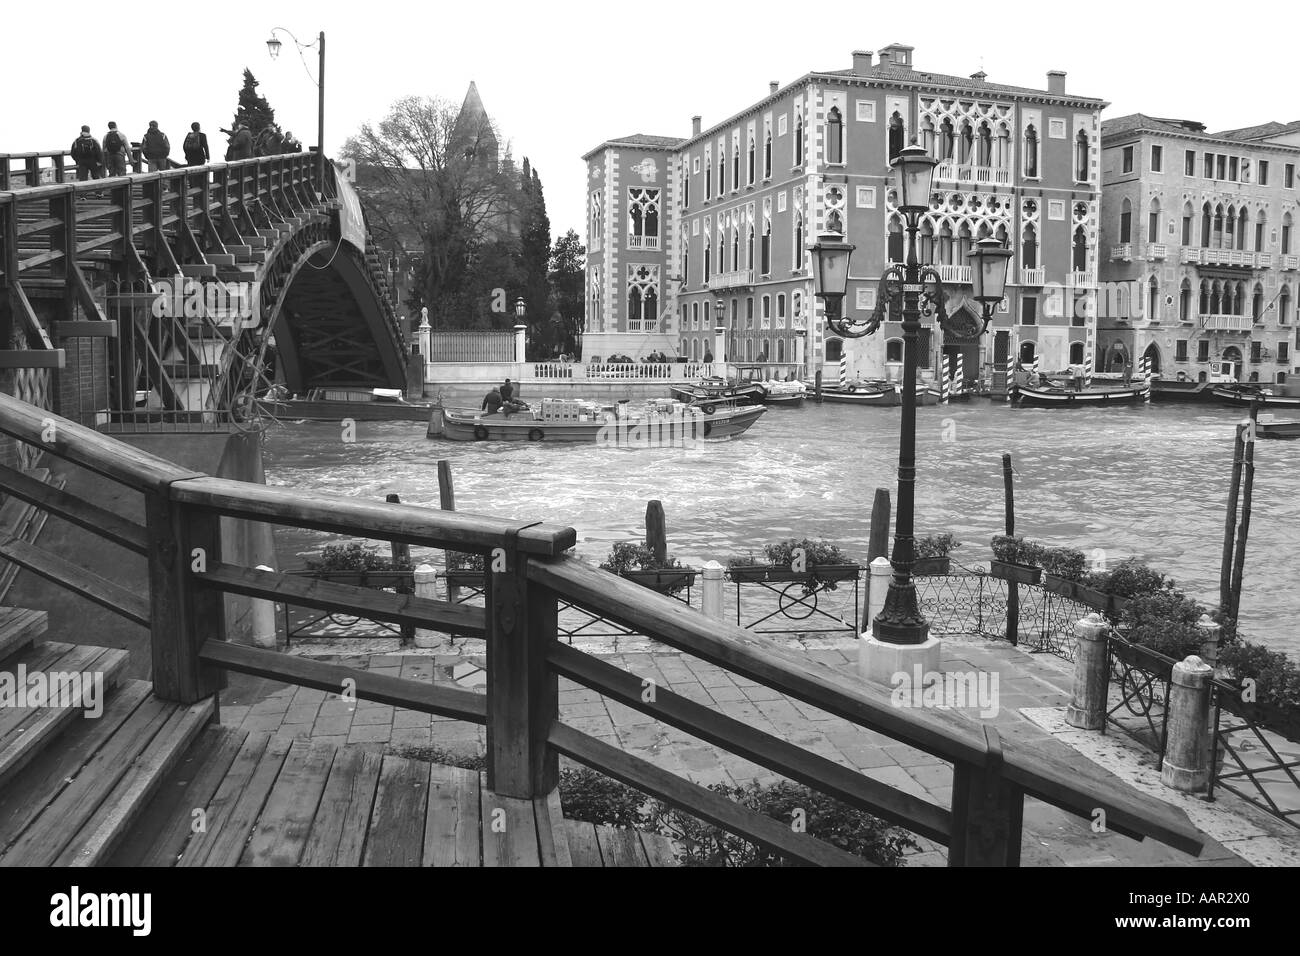 Accademia bridge, Venice, Italy Stock Photo